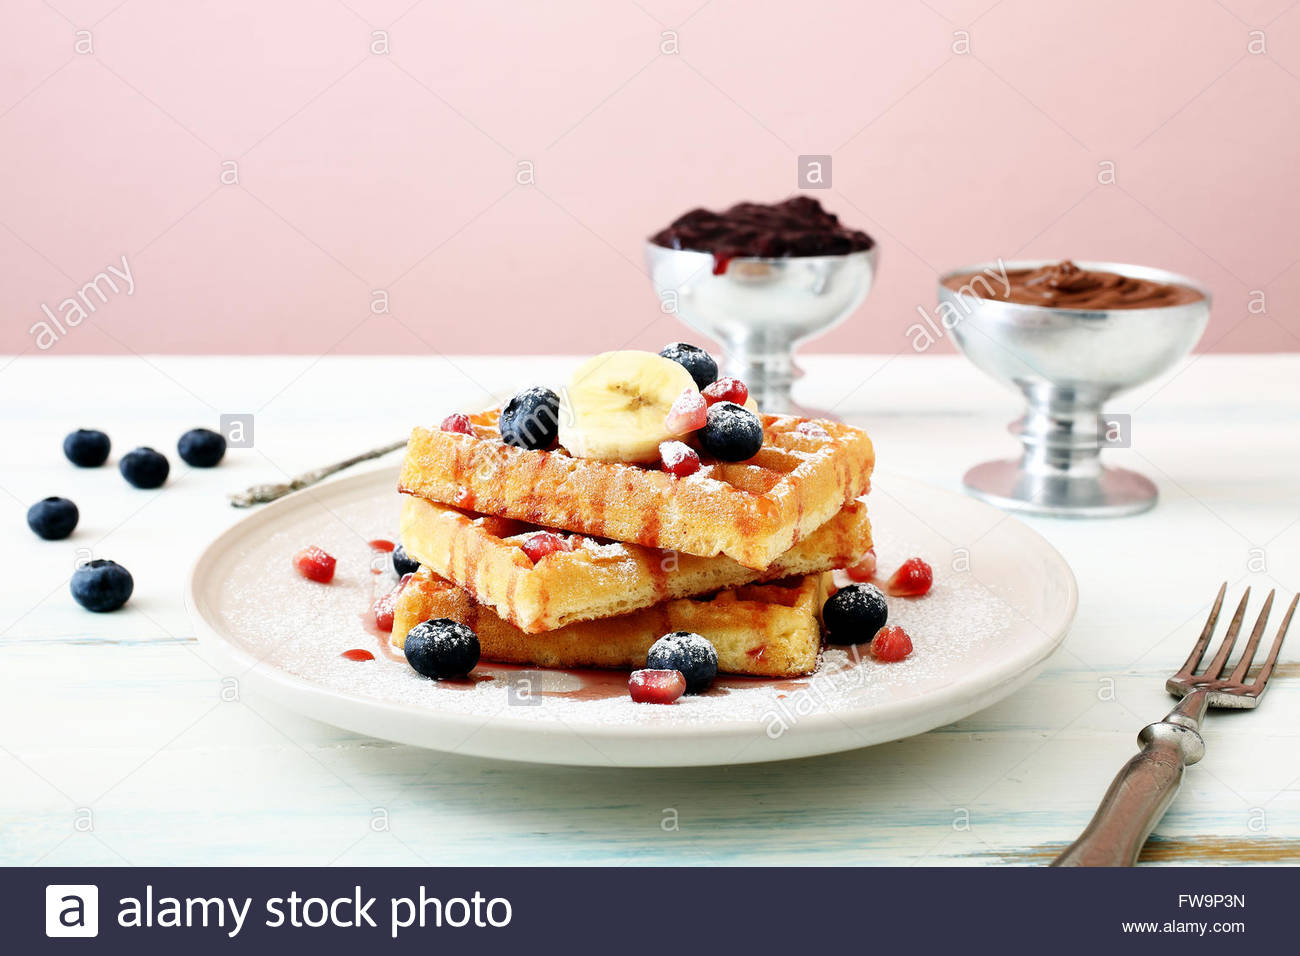 top view Belgian waffles with fresh berries and banana on kitchen table background - Stock Image